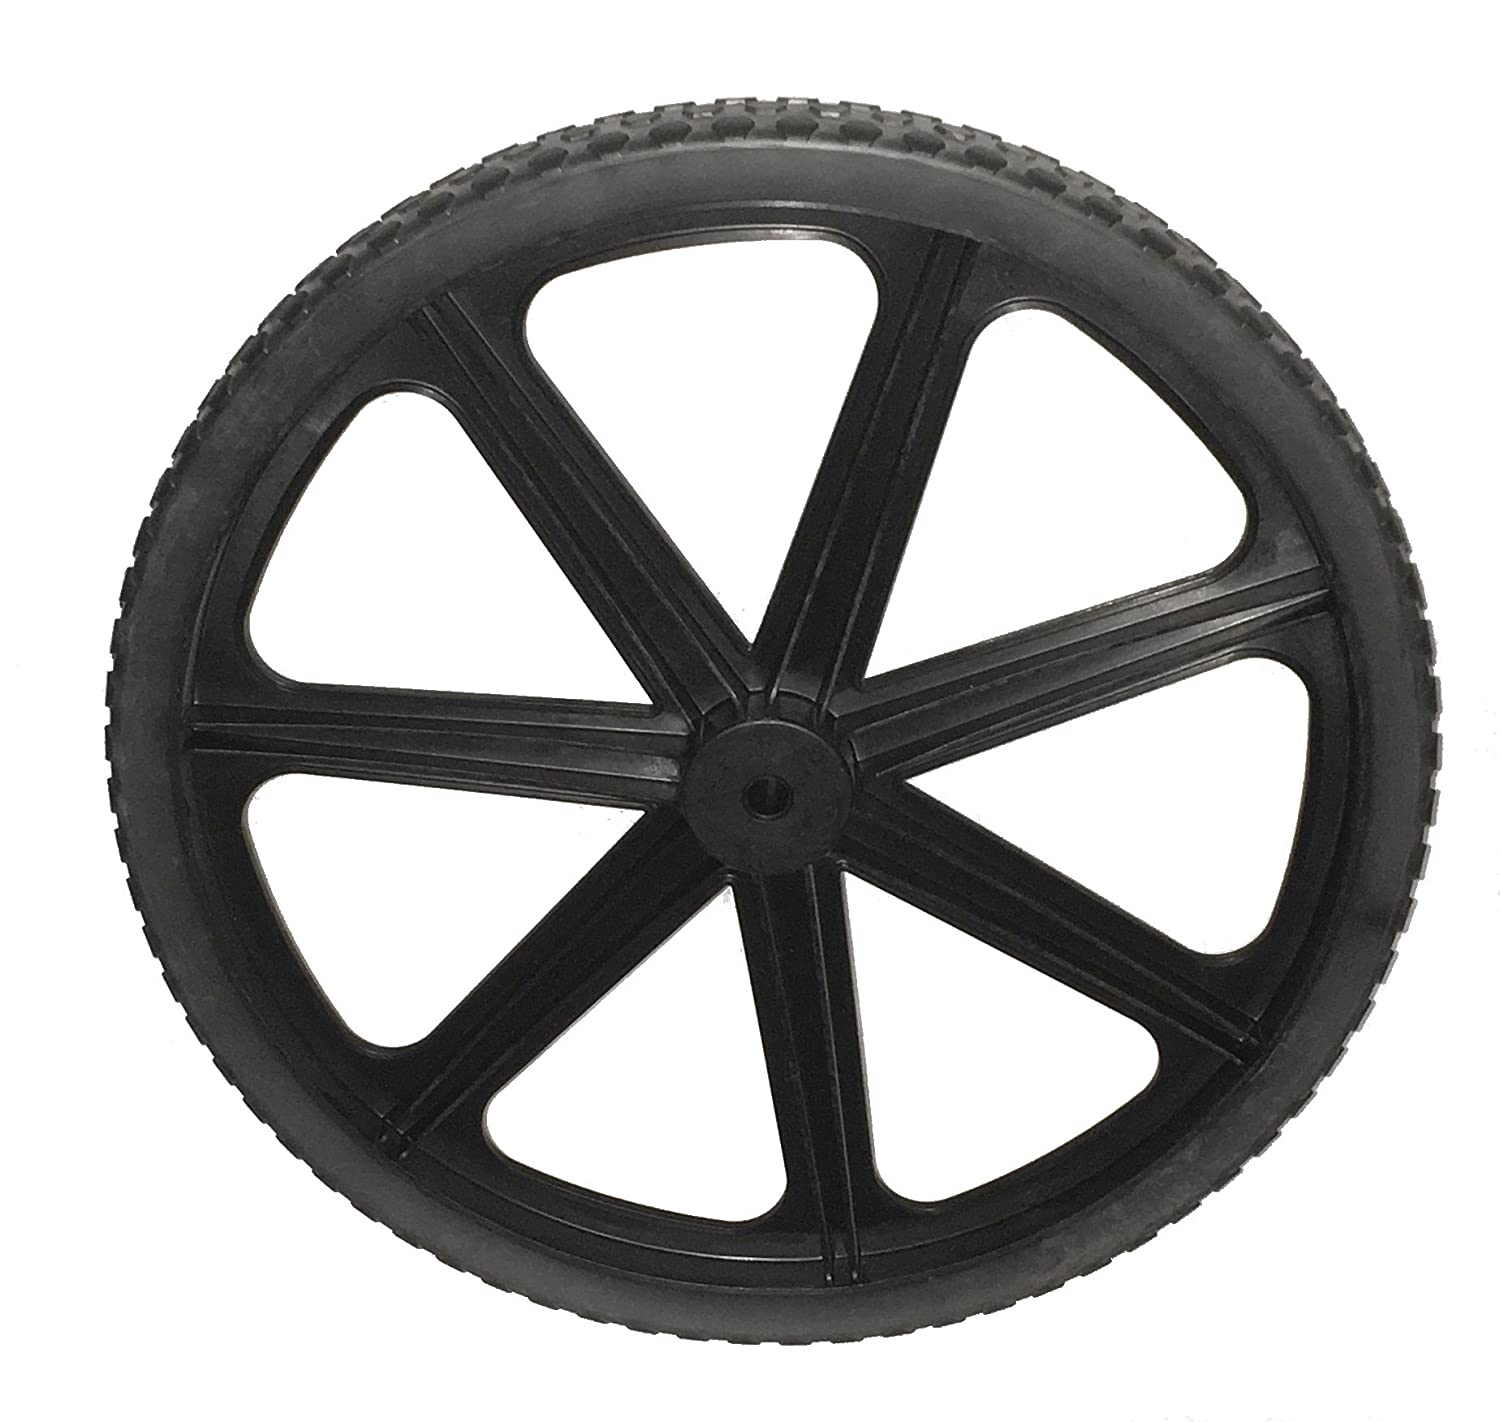 Rubbermaid Commercial Products M1564200 20 in. Non-Pneumatic Cart Wheel